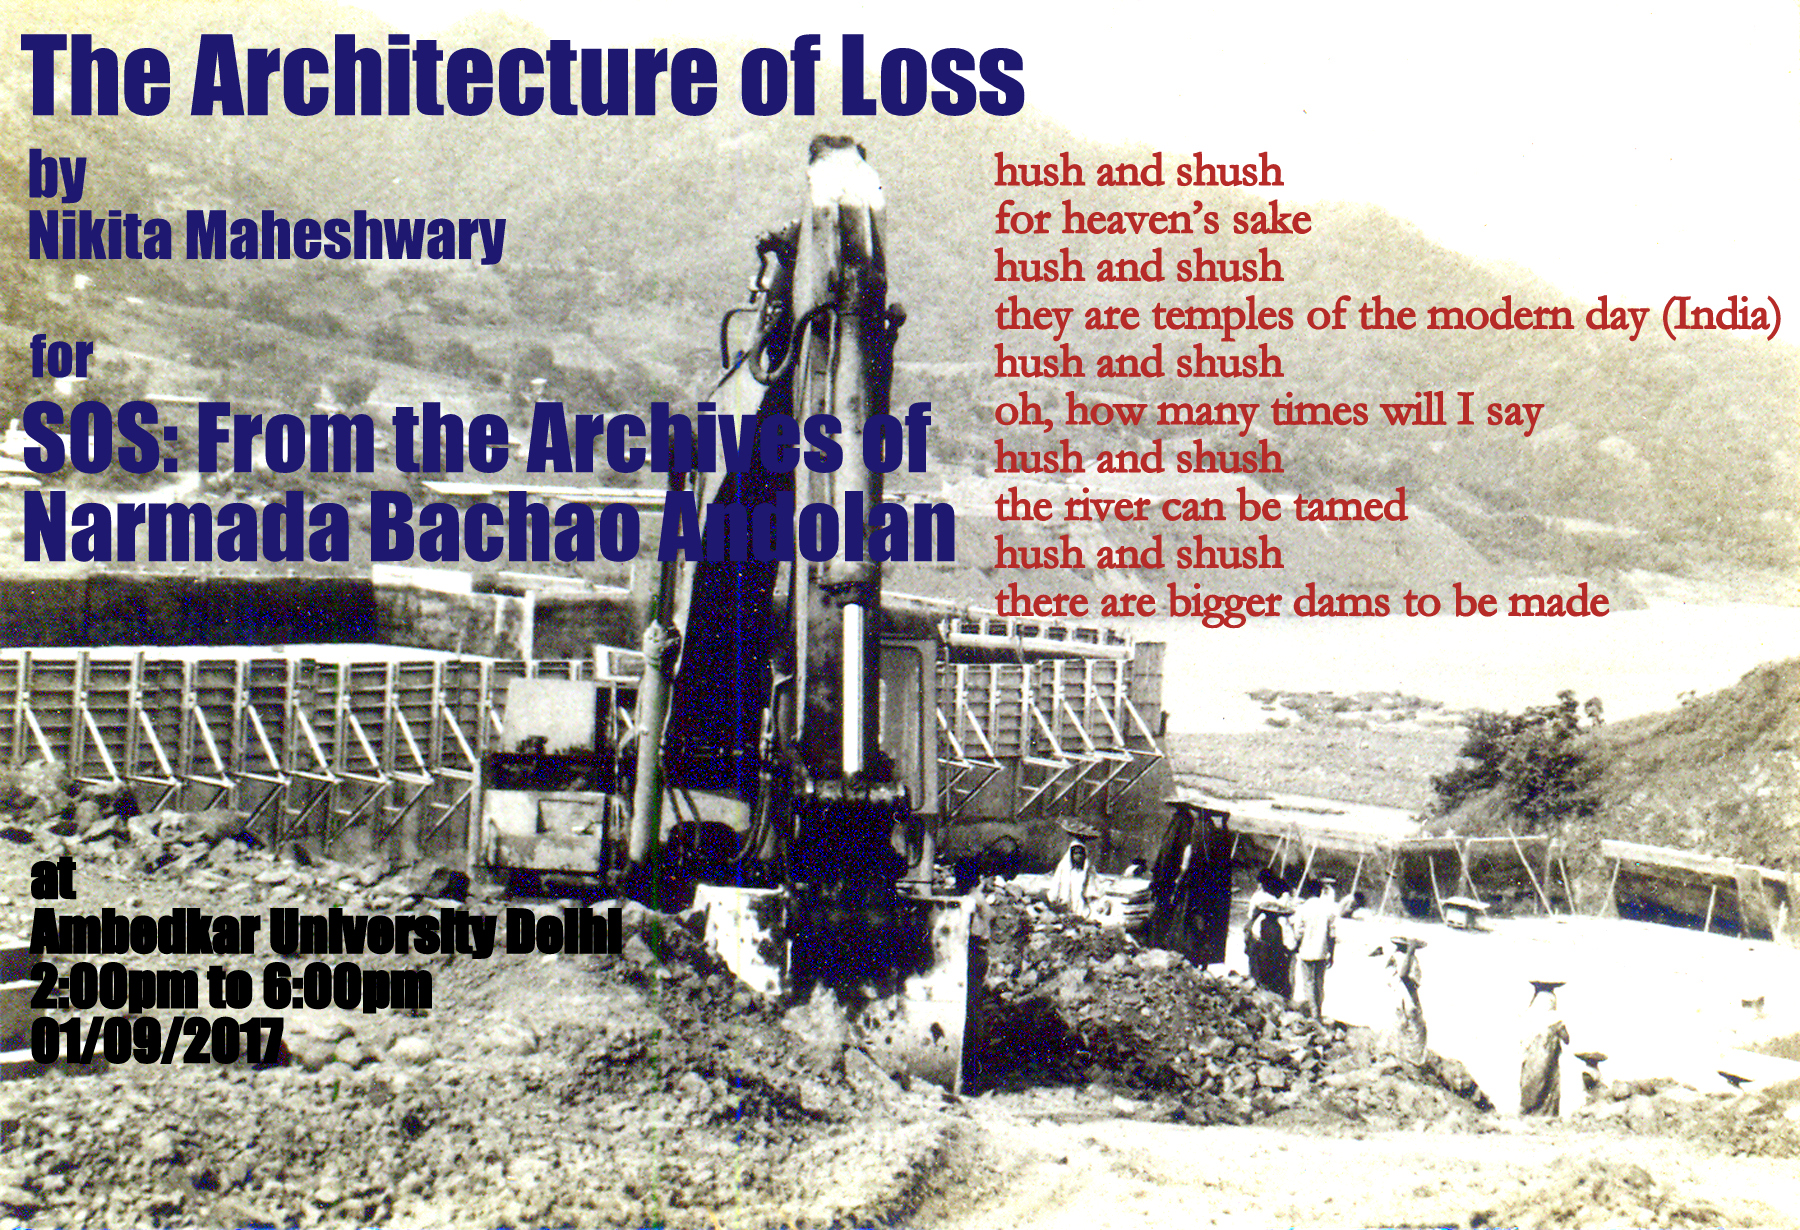 architecture of loss.jpg